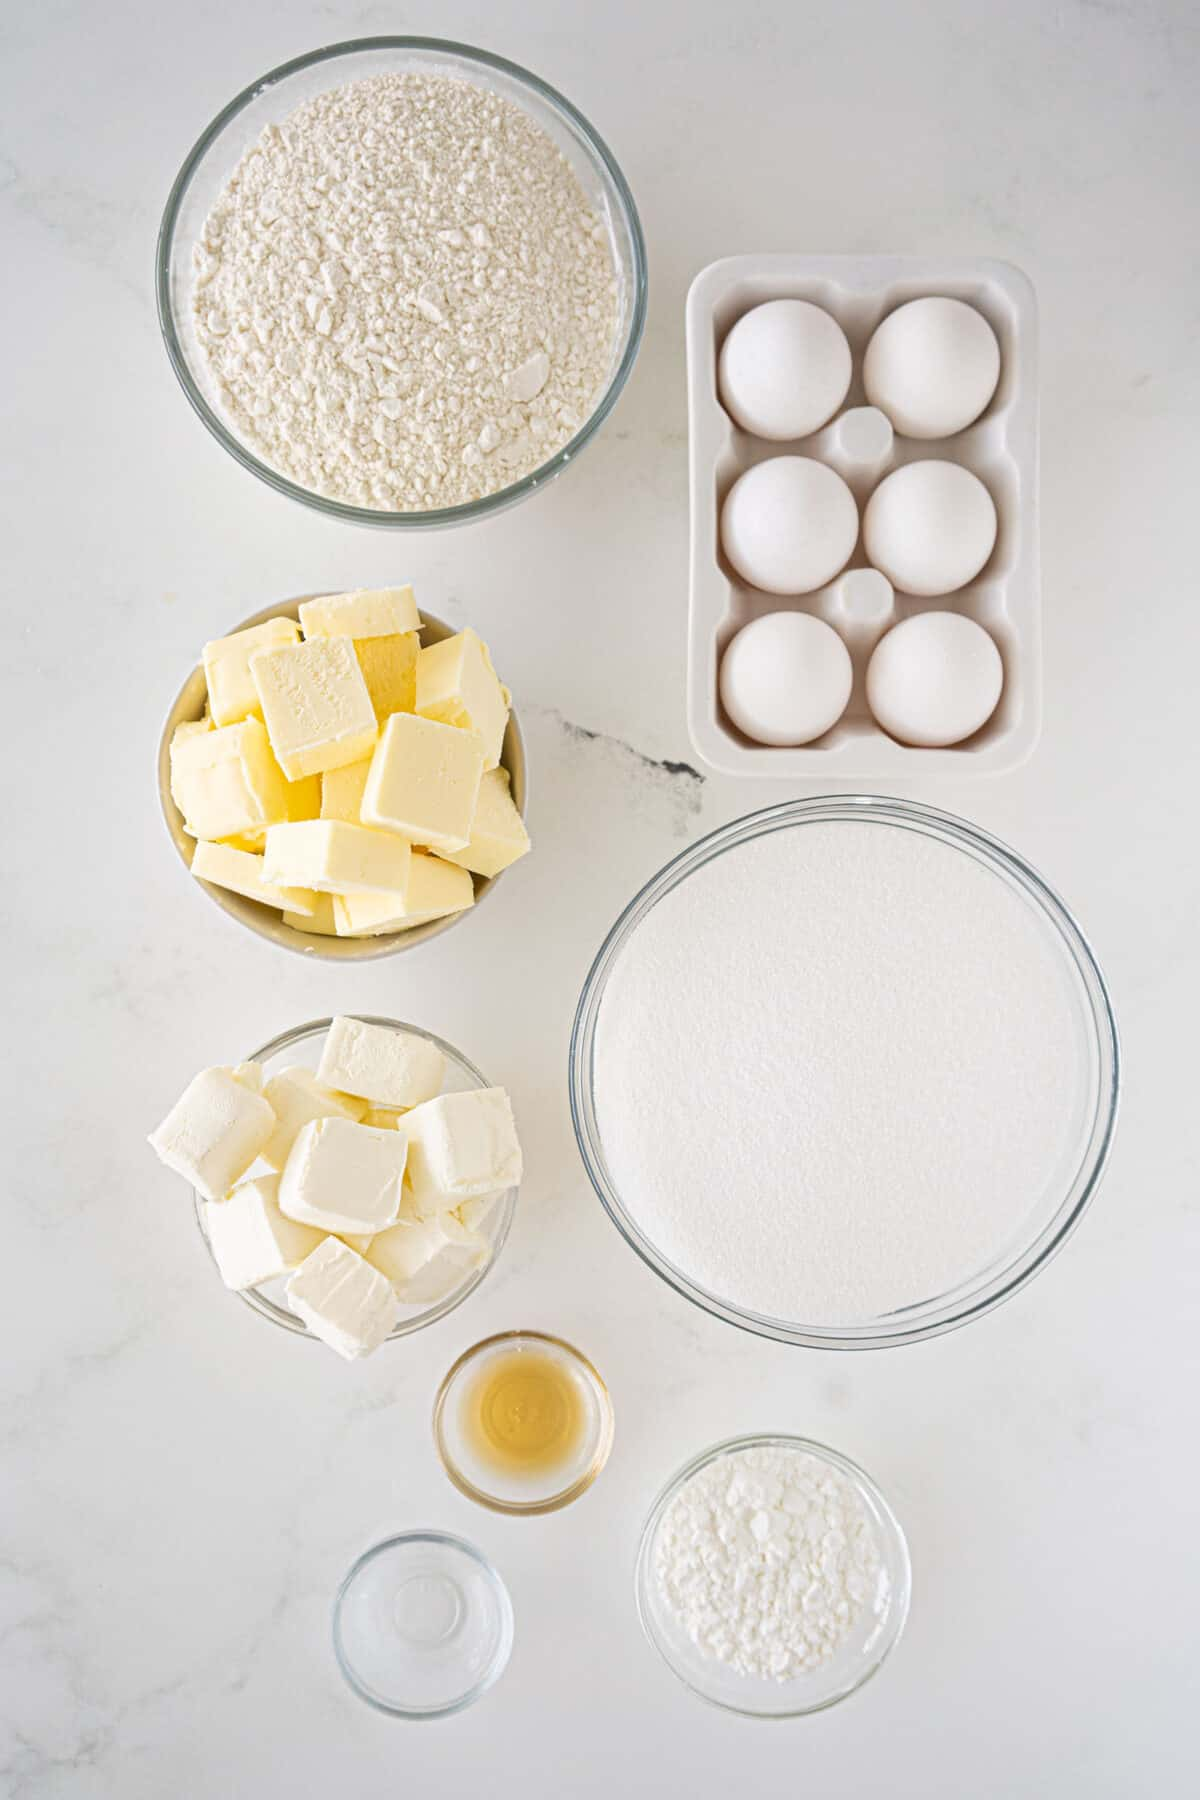 ingredients for cream cheese pound cake